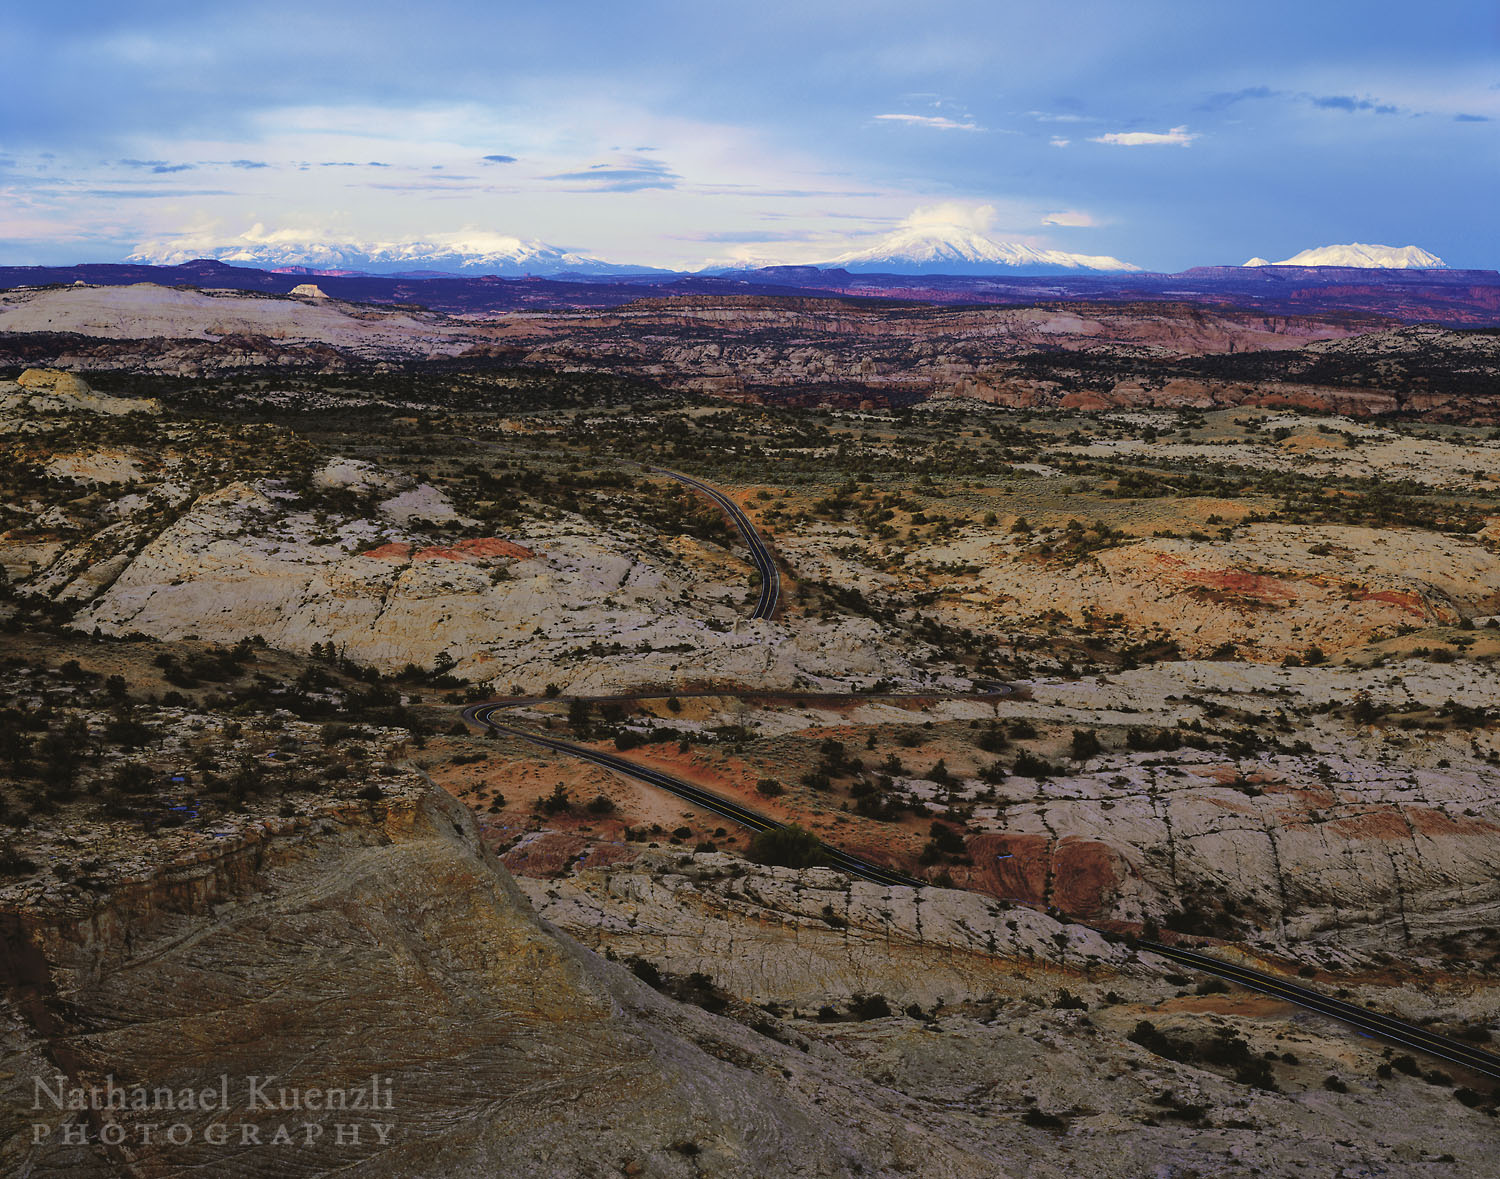 Sunset, Henry Mountains, Grand Staircase-Escalante National Monument, Utah, April 2005